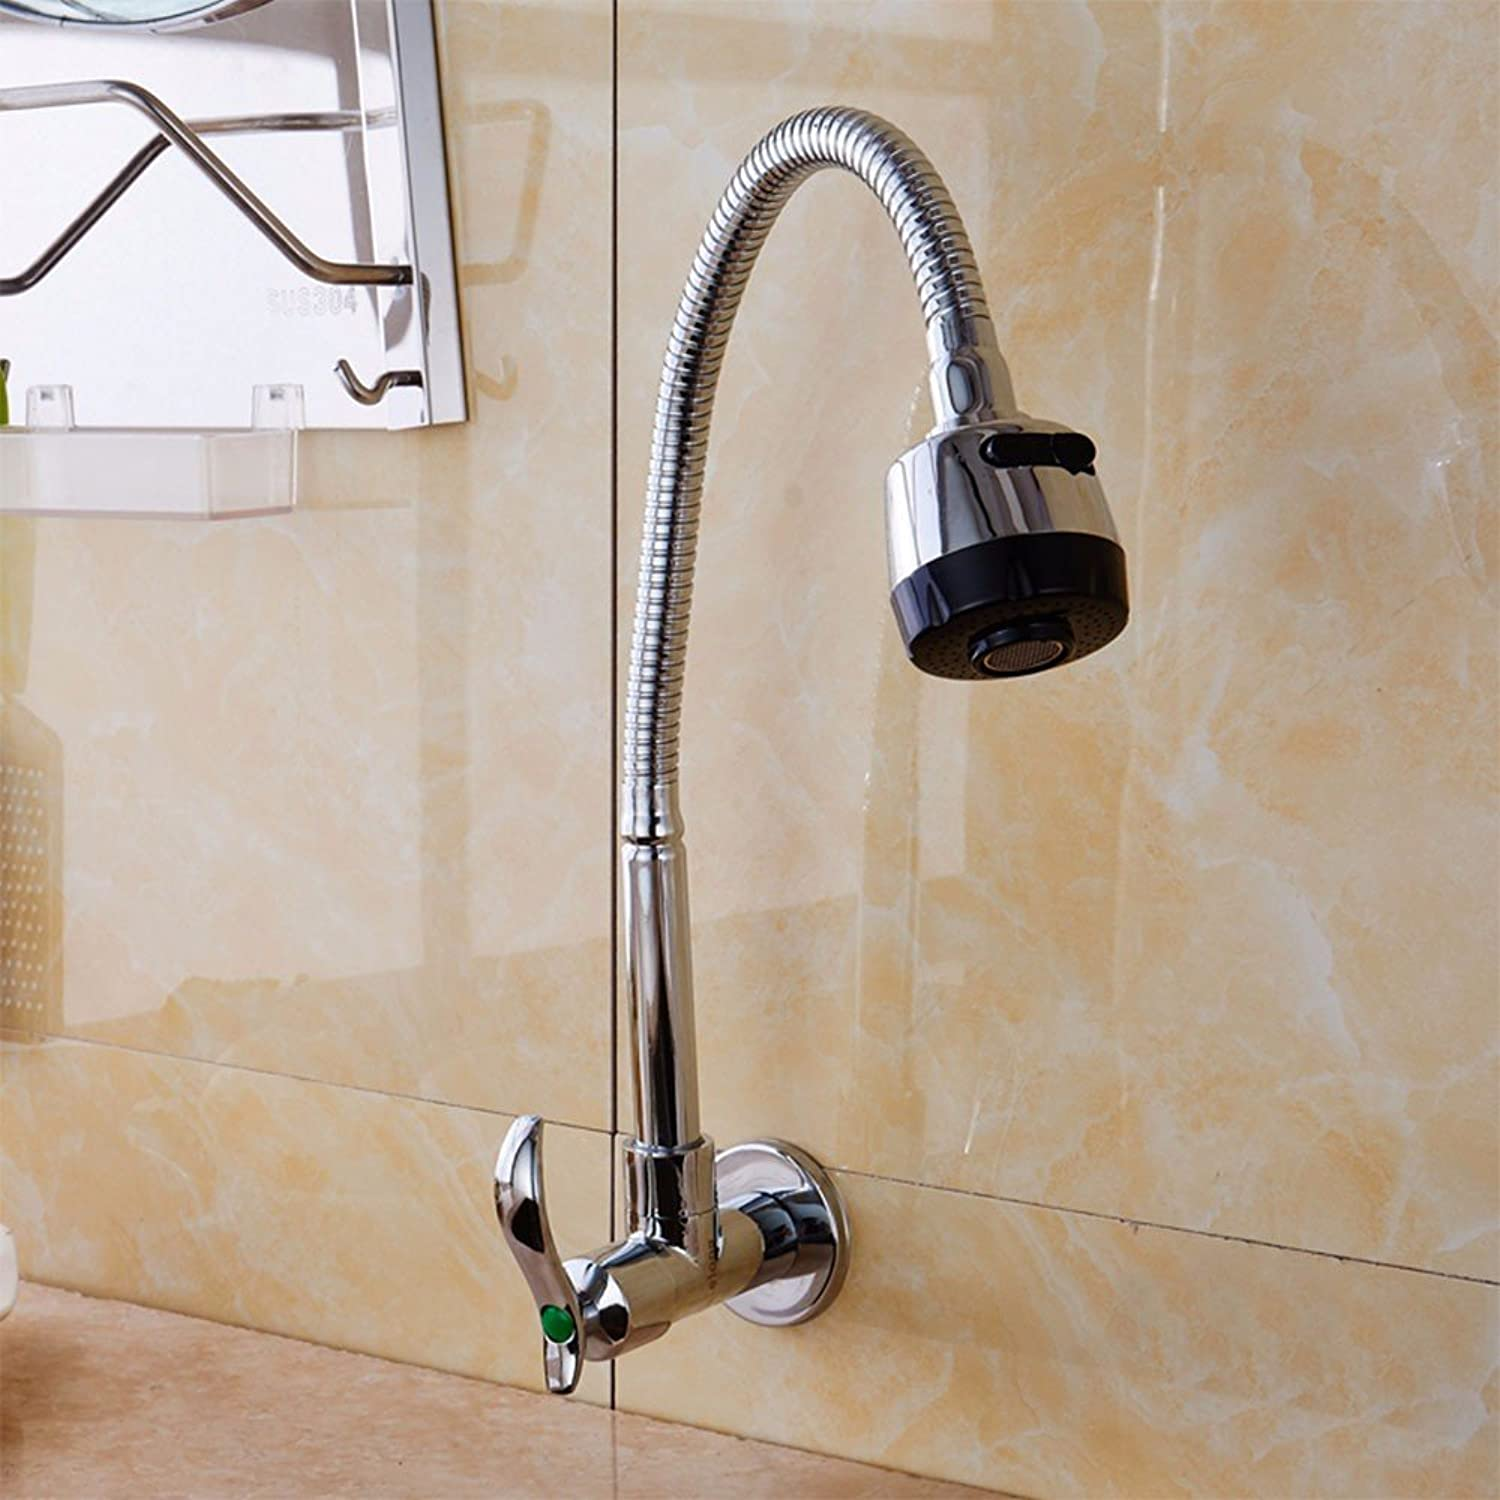 Bijjaladeva Antique Kitchen Sink Mixer Tap Kitchen Faucet Sink into The Wall of The Single Cold Water taps